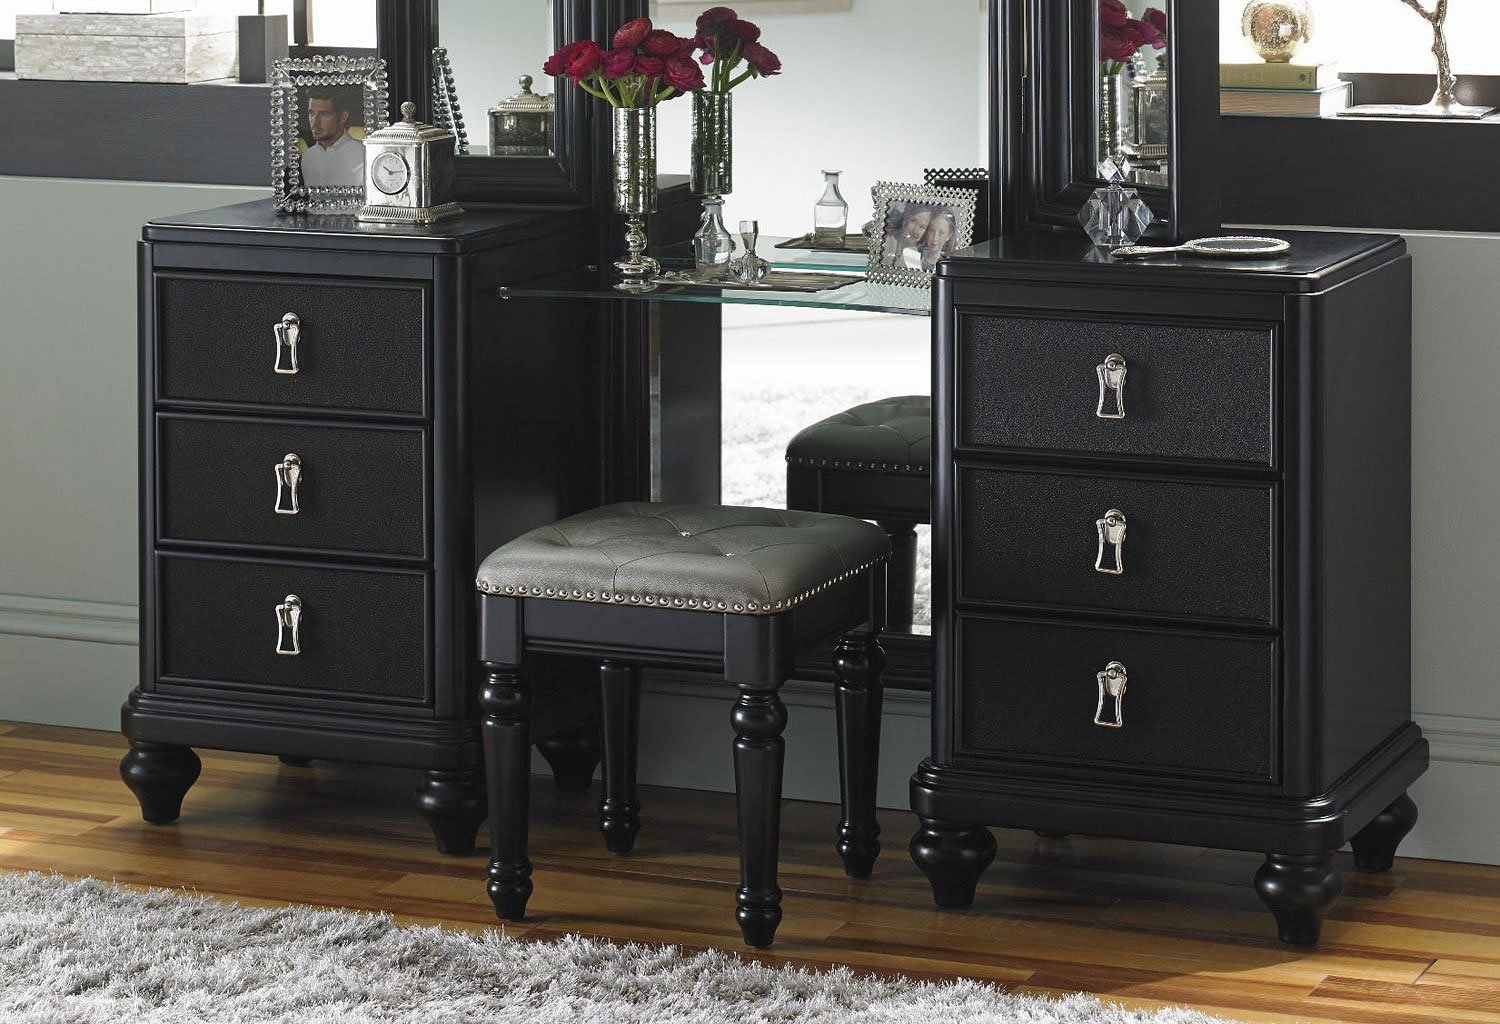 Diva Midnight Vanity Dresser W Stool Bedroom Vanities Bedroom Furniture Bedroom